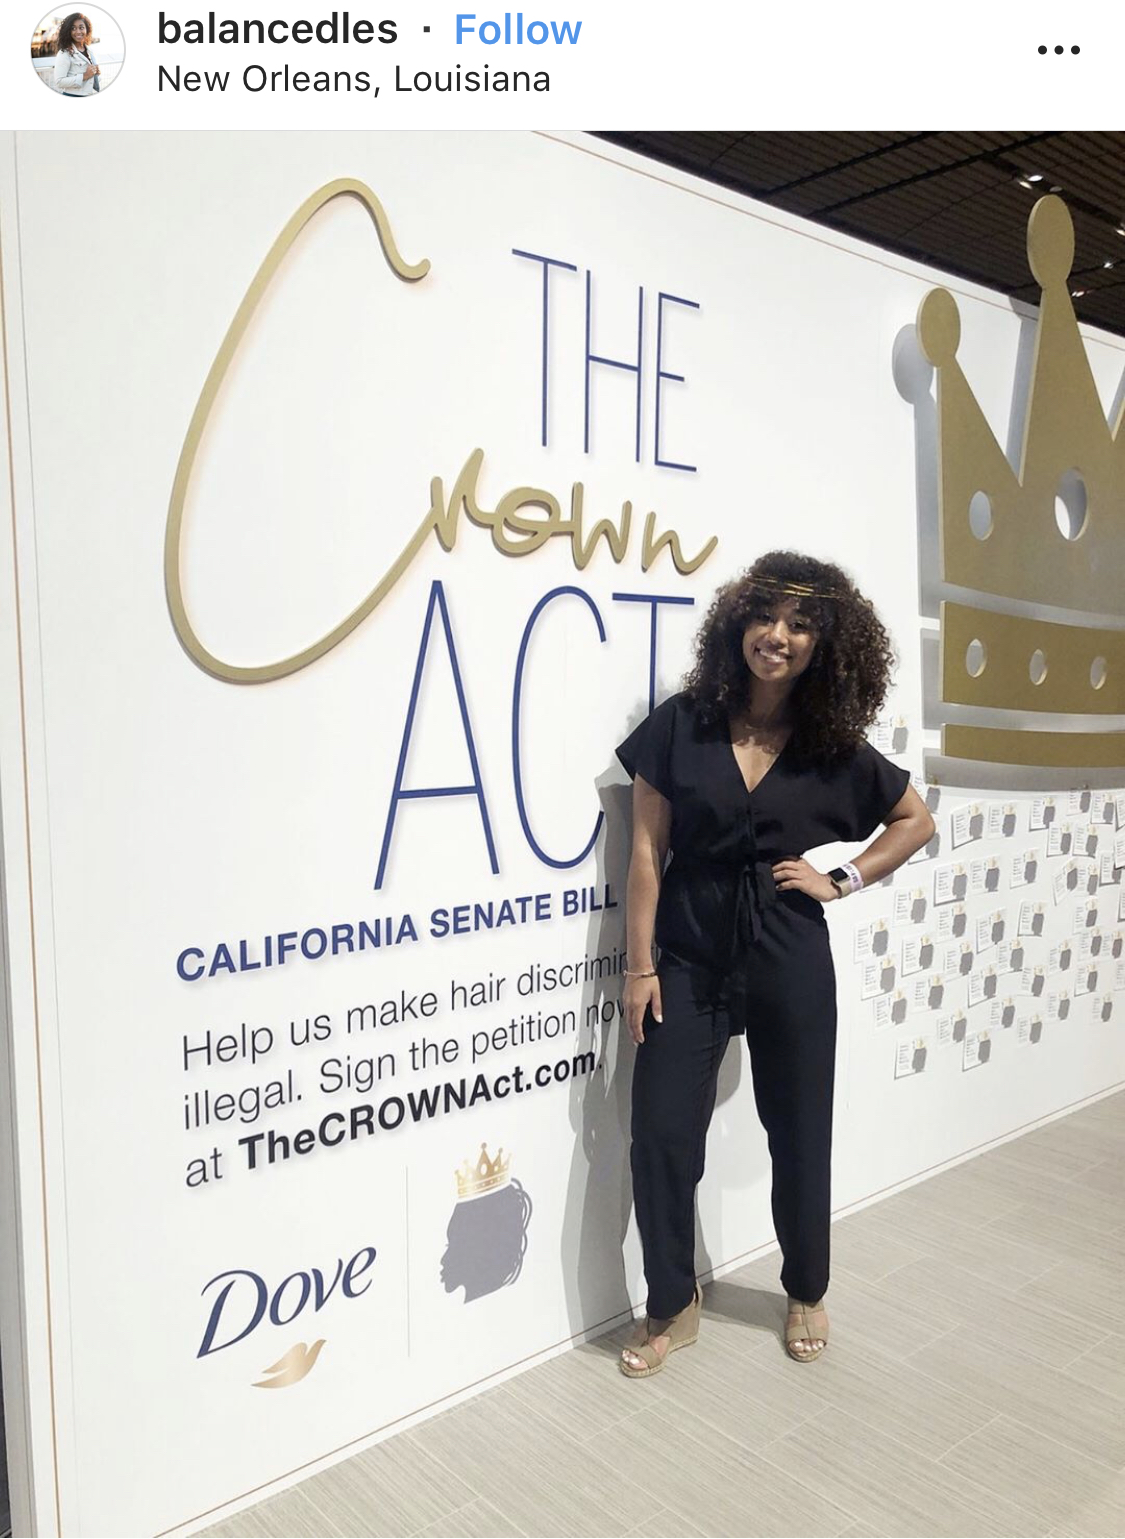 This Brand Activation involves advocacy and has a clear Call to Action, to sign a petition. Also notice the participatory cards that are placed on the wall. Dove did a great job representing their brand visually but also connecting with an issue that the Essence Audience cares about - hair discrimination.